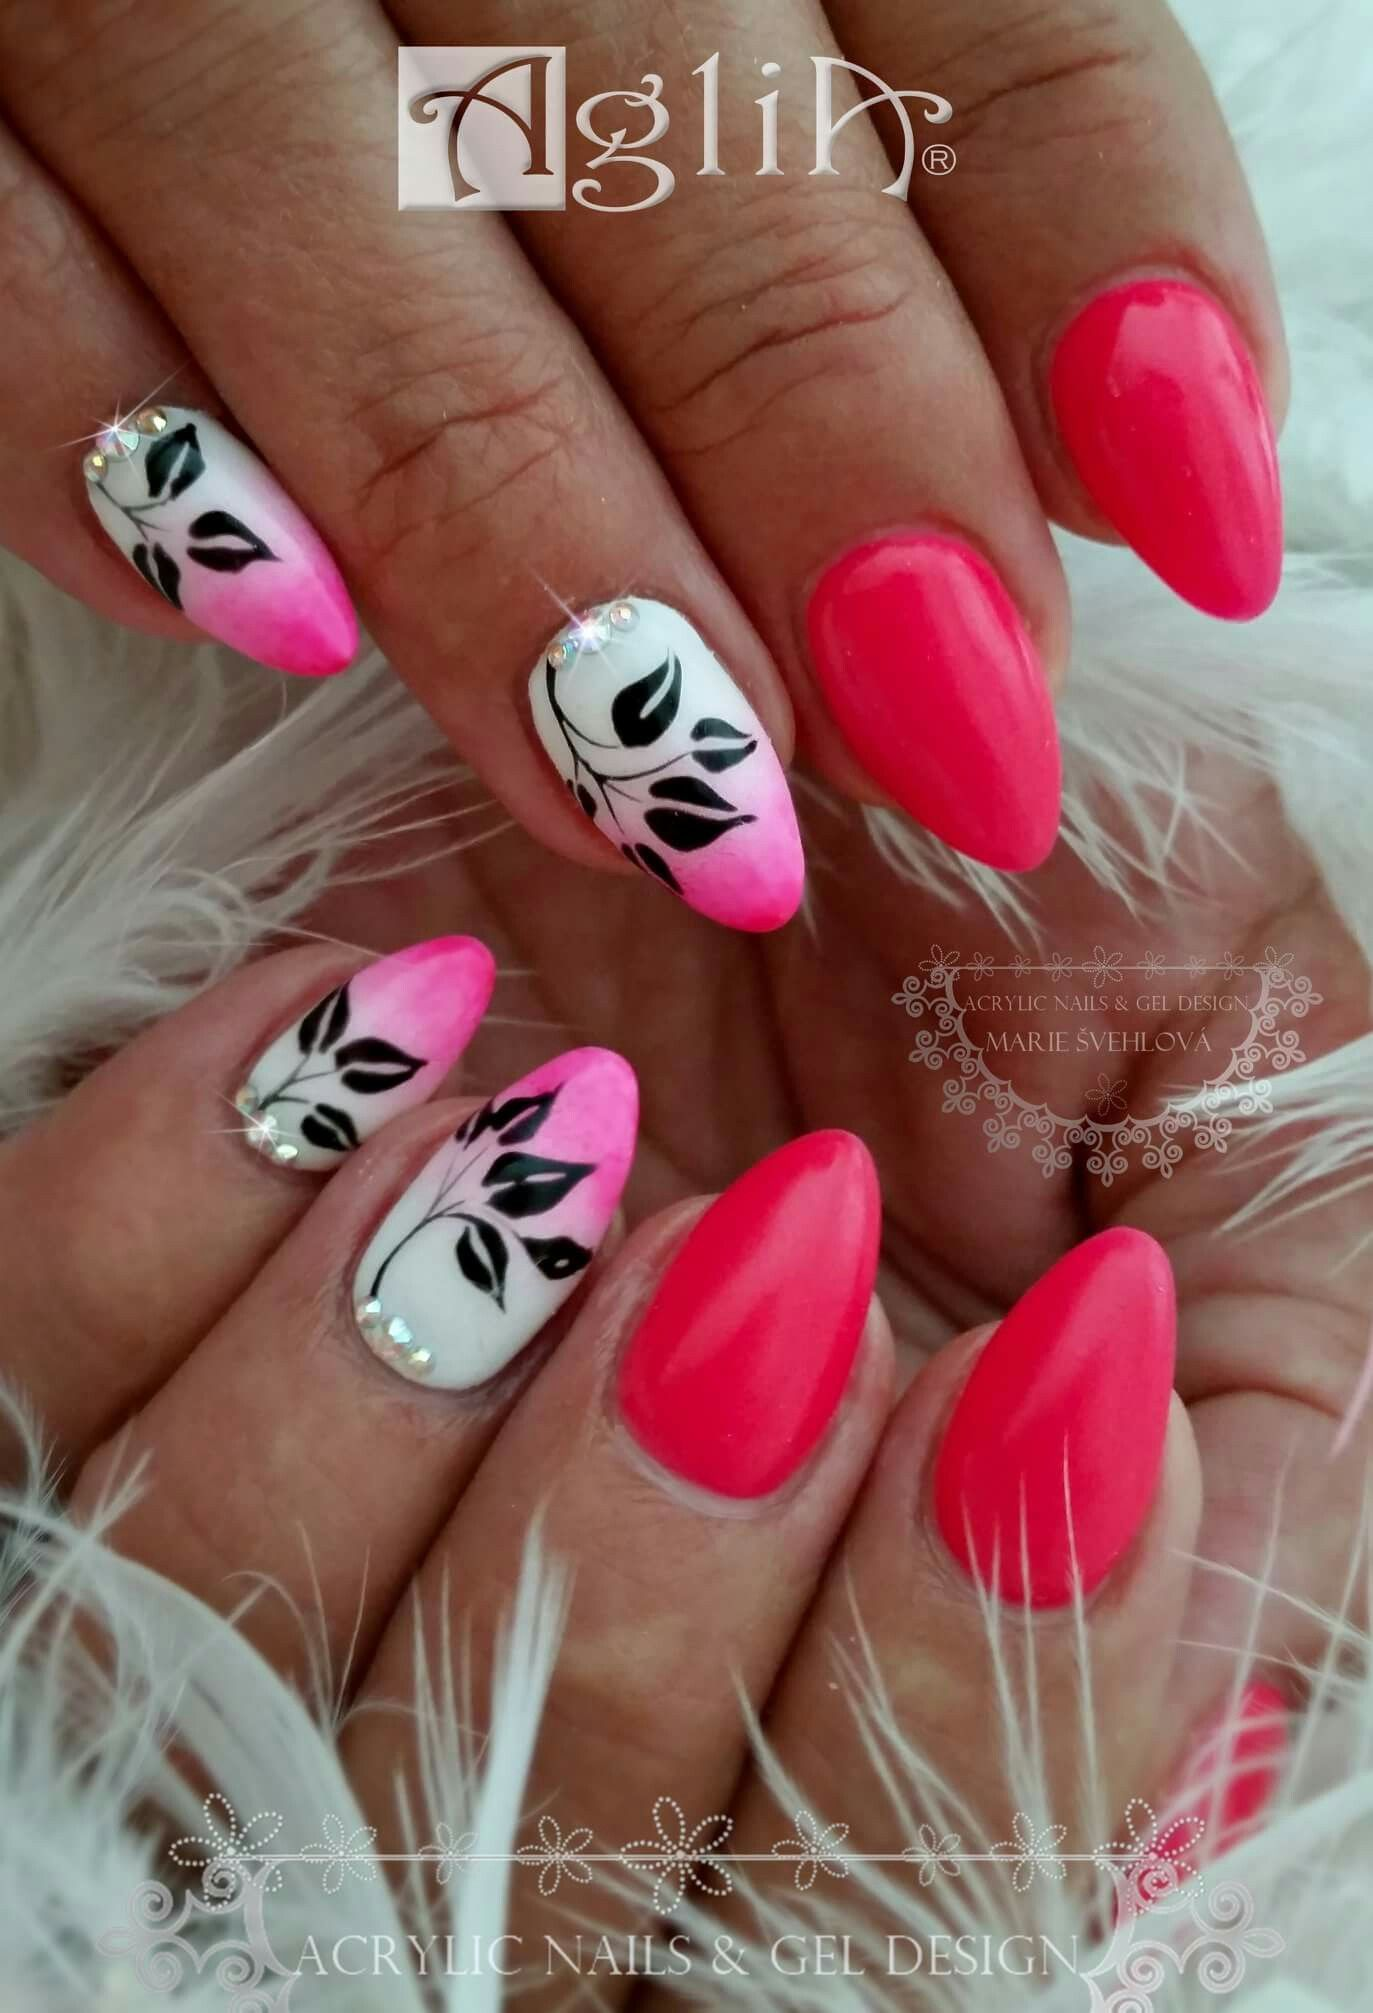 Acrylic Nails Gel Design Pink Ombre Work Nails Nails Nail Designs